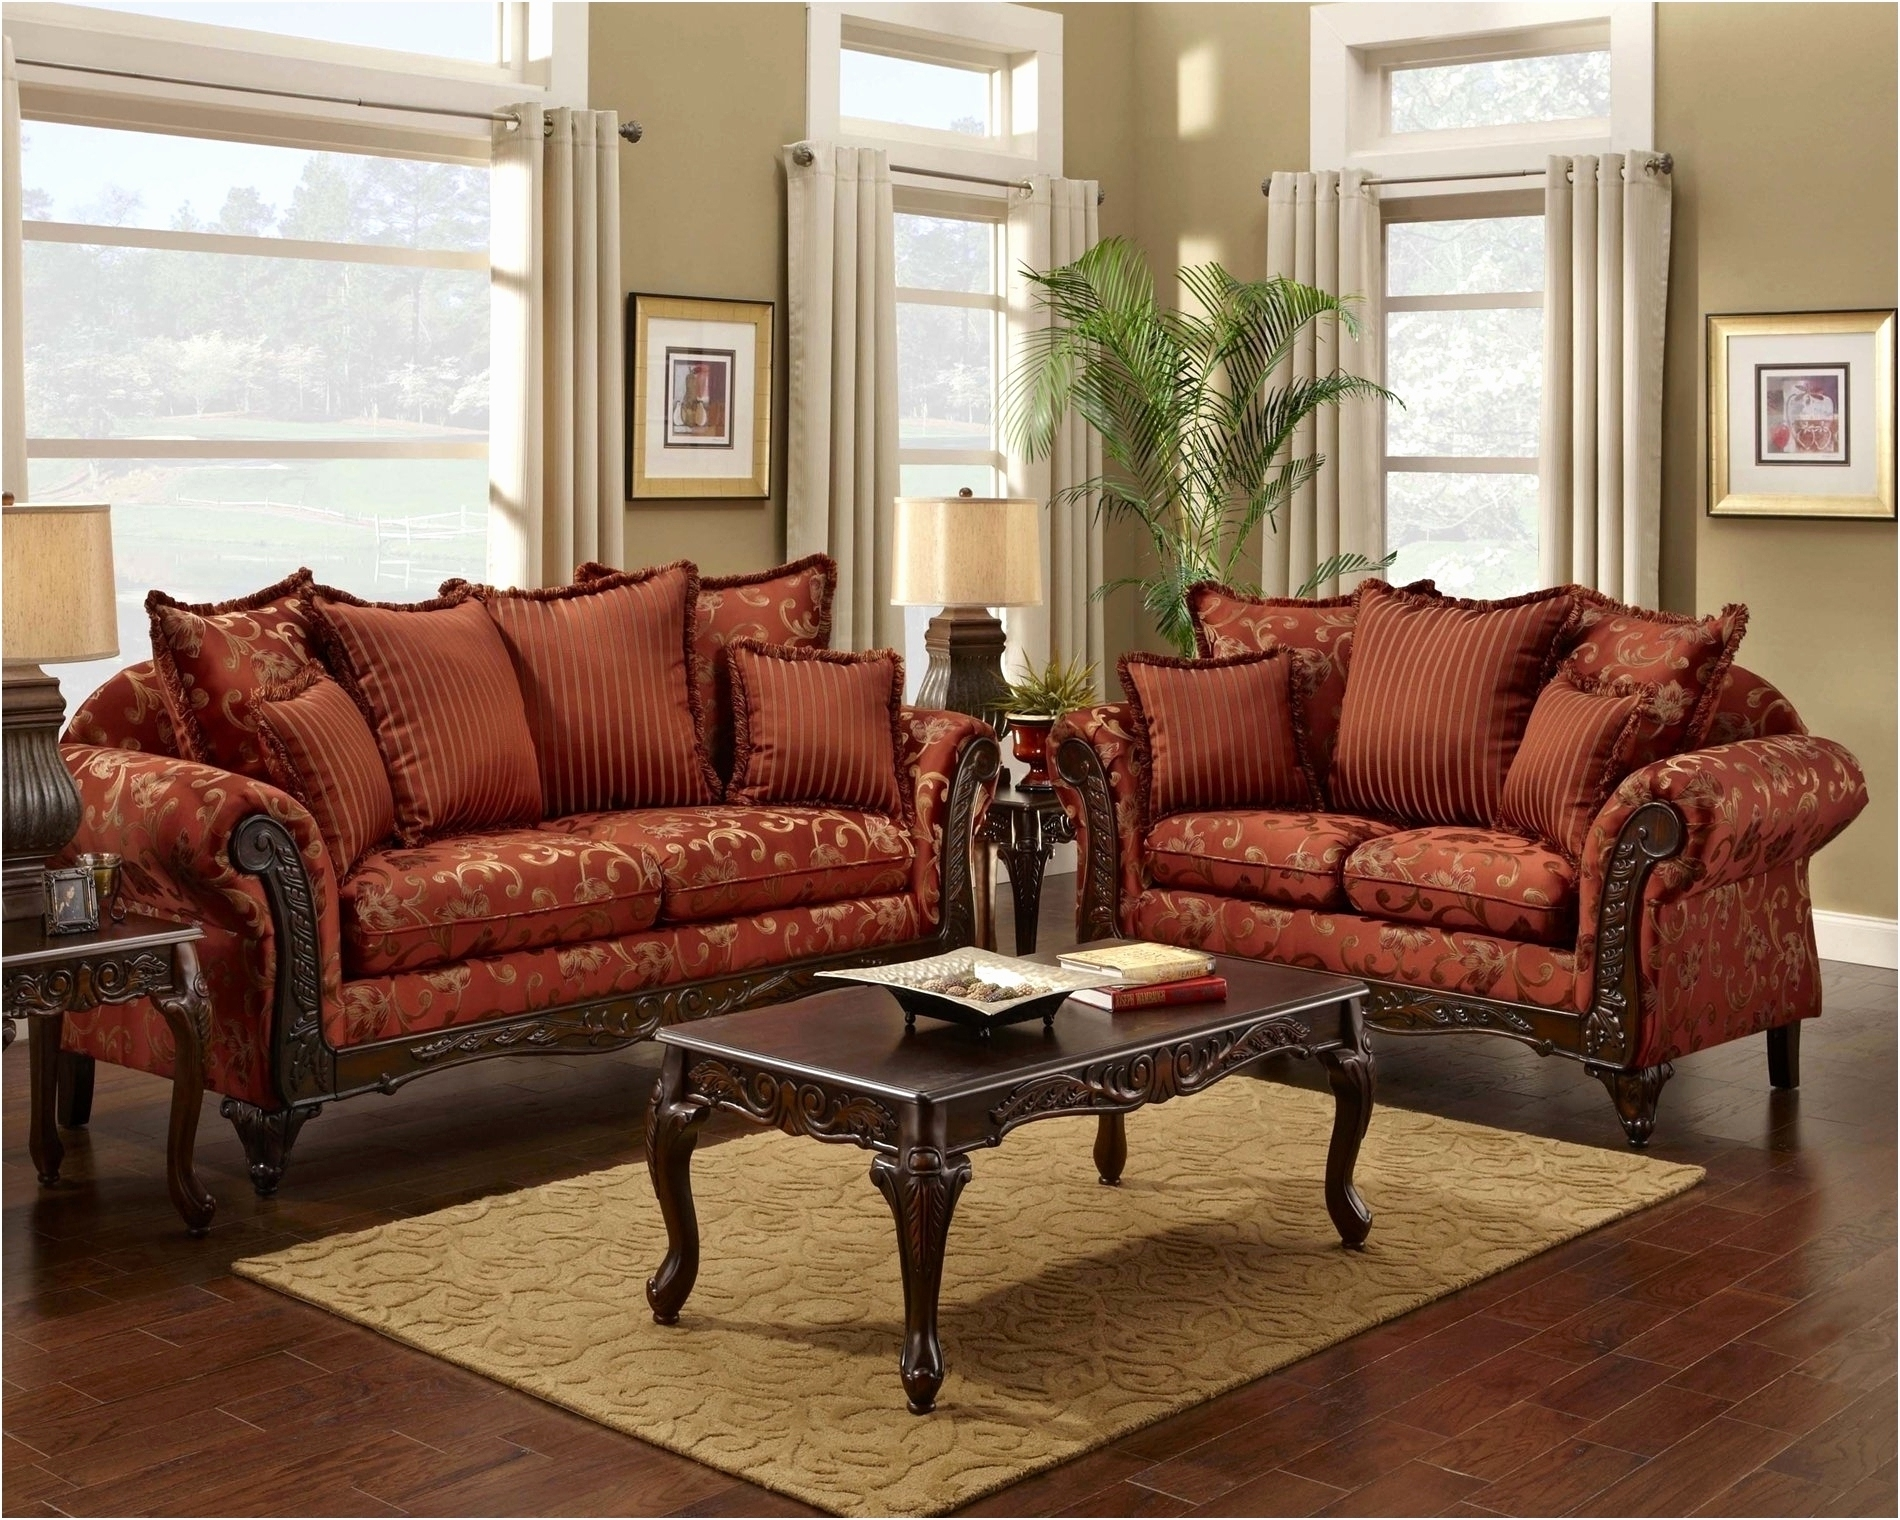 Unique Red Microfiber Couch And Loveseat 2018 – Couches And Sofas Pertaining To Fashionable Kanes Sectional Sofas (View 19 of 20)